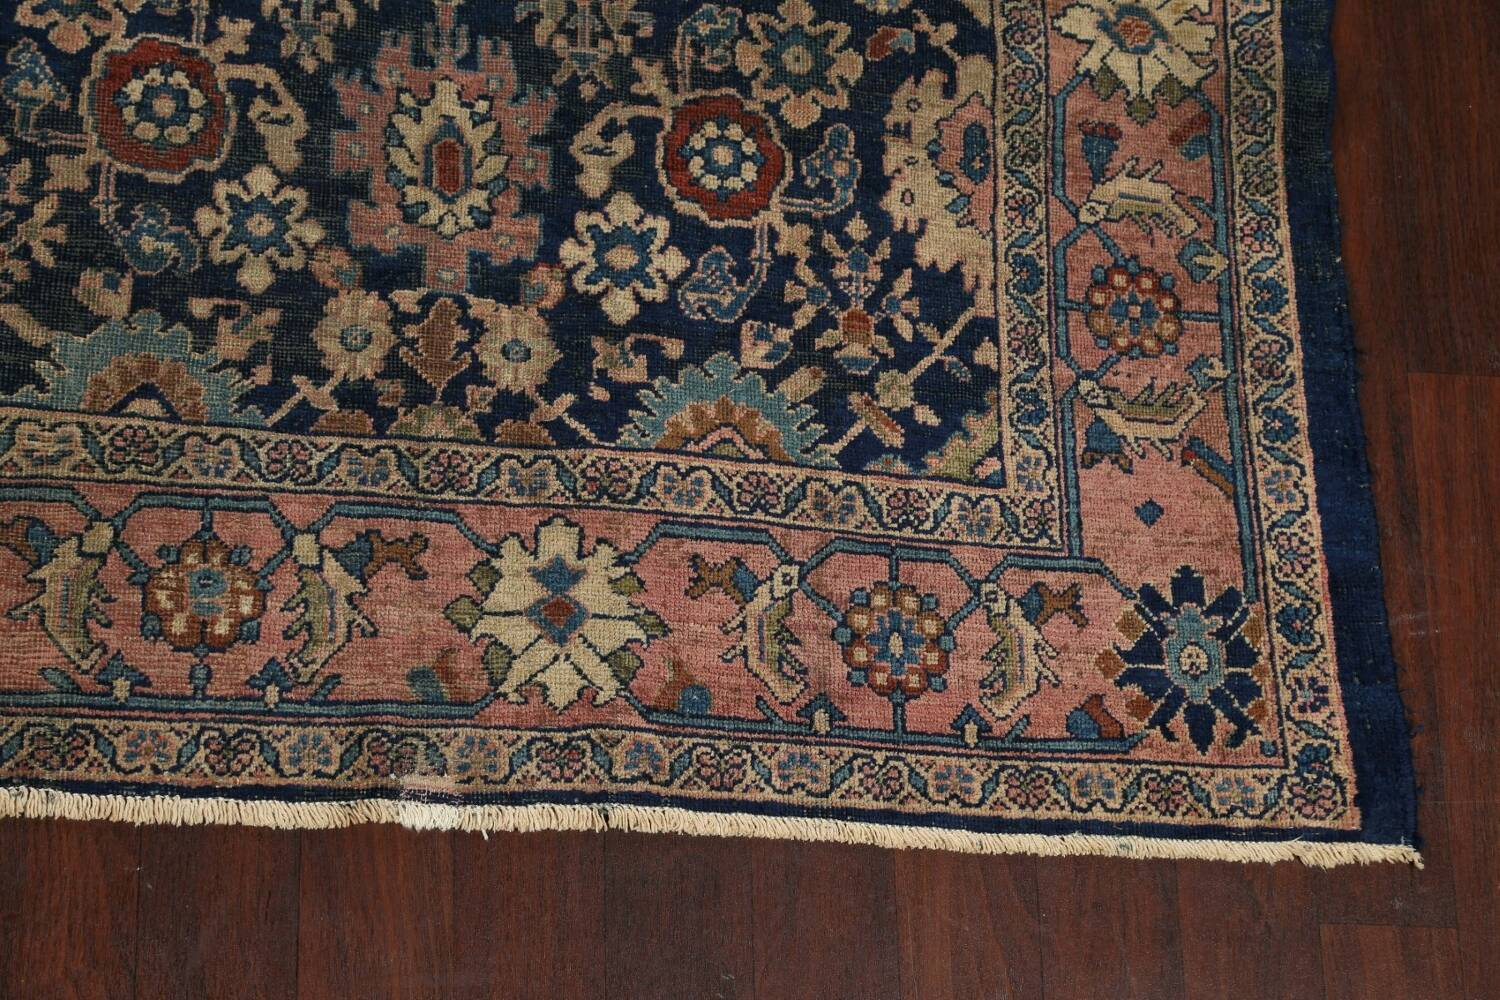 Pre-1900 Antique Vegetable Dye Sultanabad Persian Area Rug 10x13 image 5